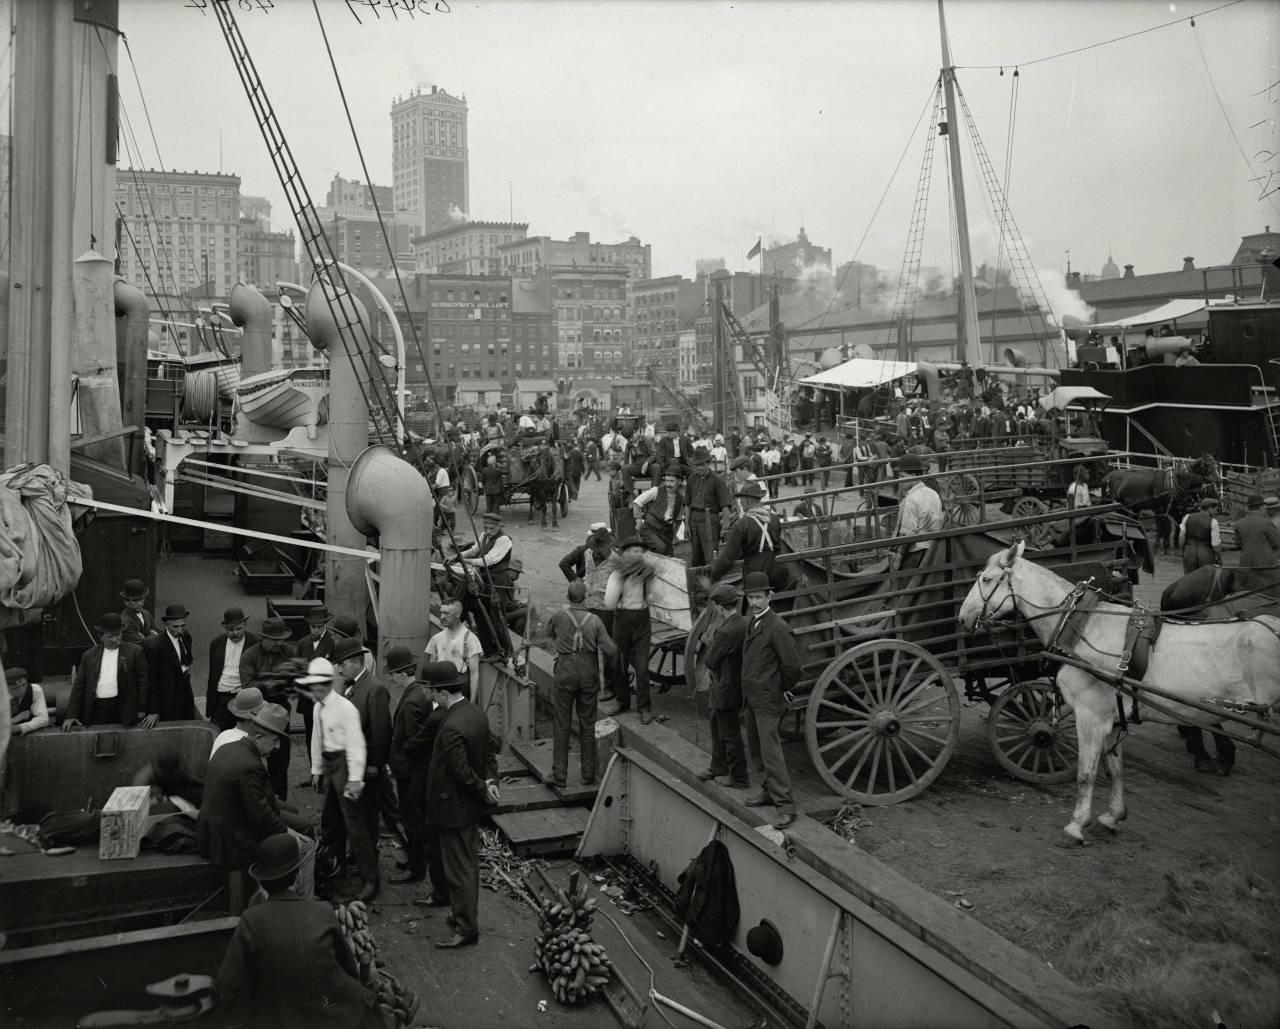 collective-history: Banana docks, New York, ca.1890-1910.